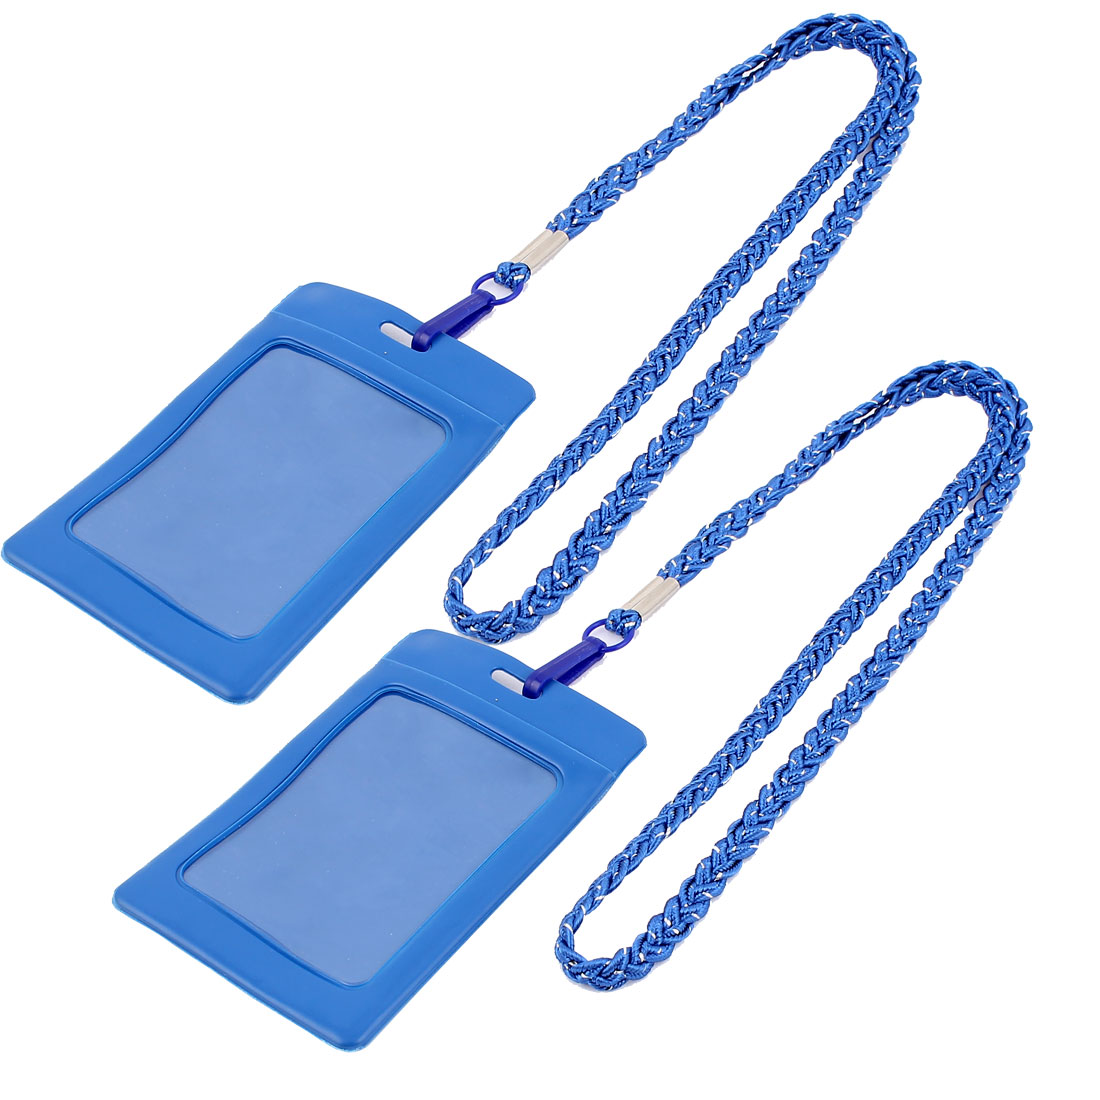 Company Office Nylon Neck Strap Lanyard Vertical Name Card ID Badge Holder Carrier Blue 2pcs